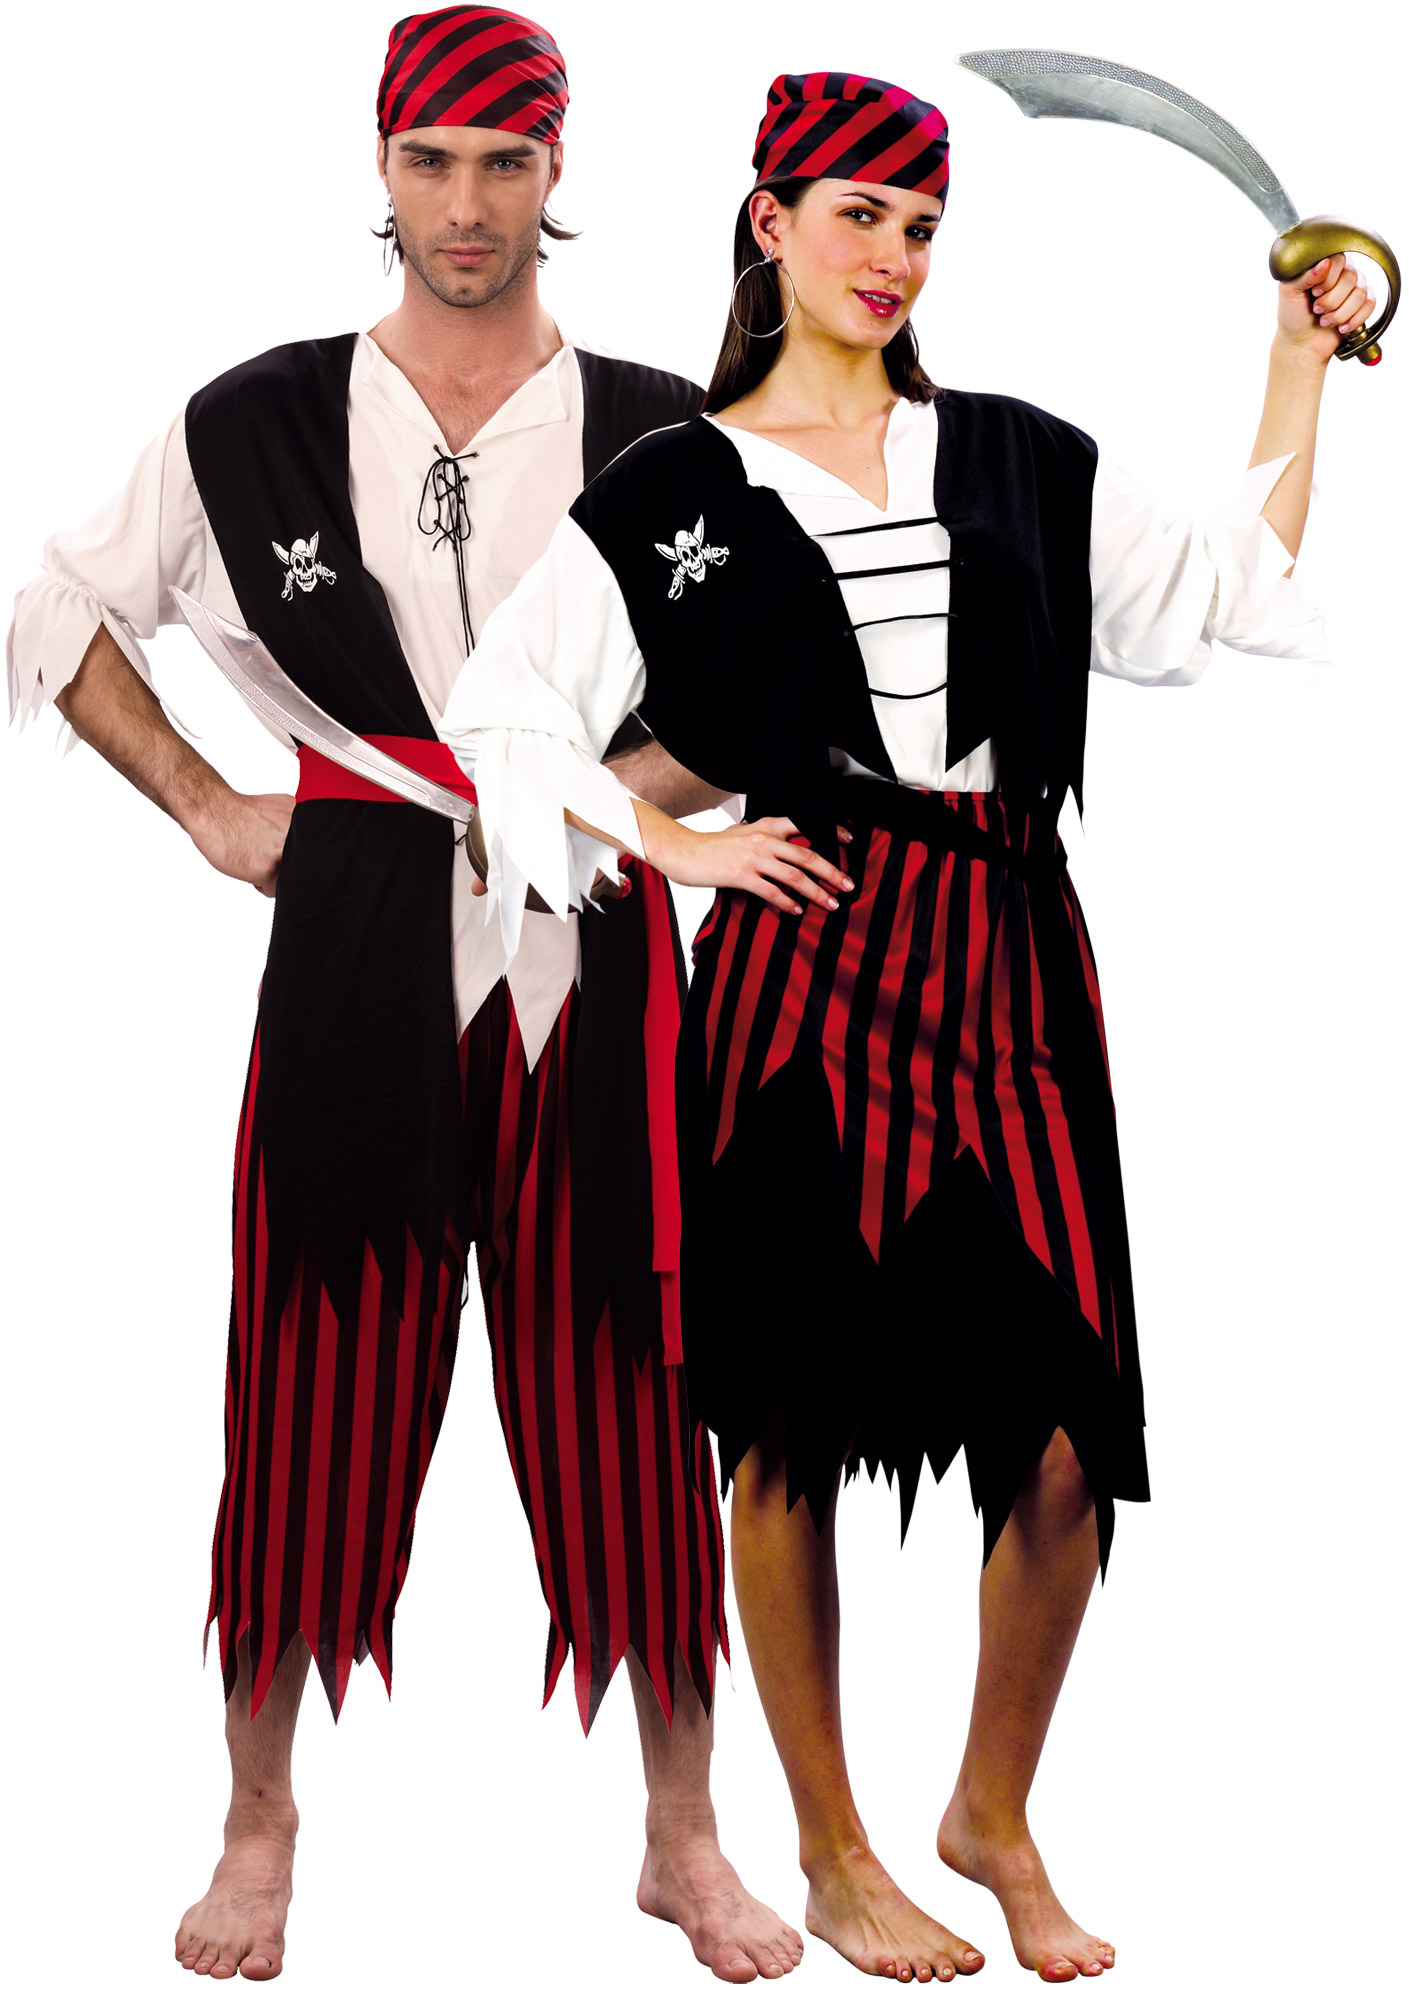 D guisement couple de pirates d guisement couple pas cher costume carnaval - Deguisement halloween couple ...